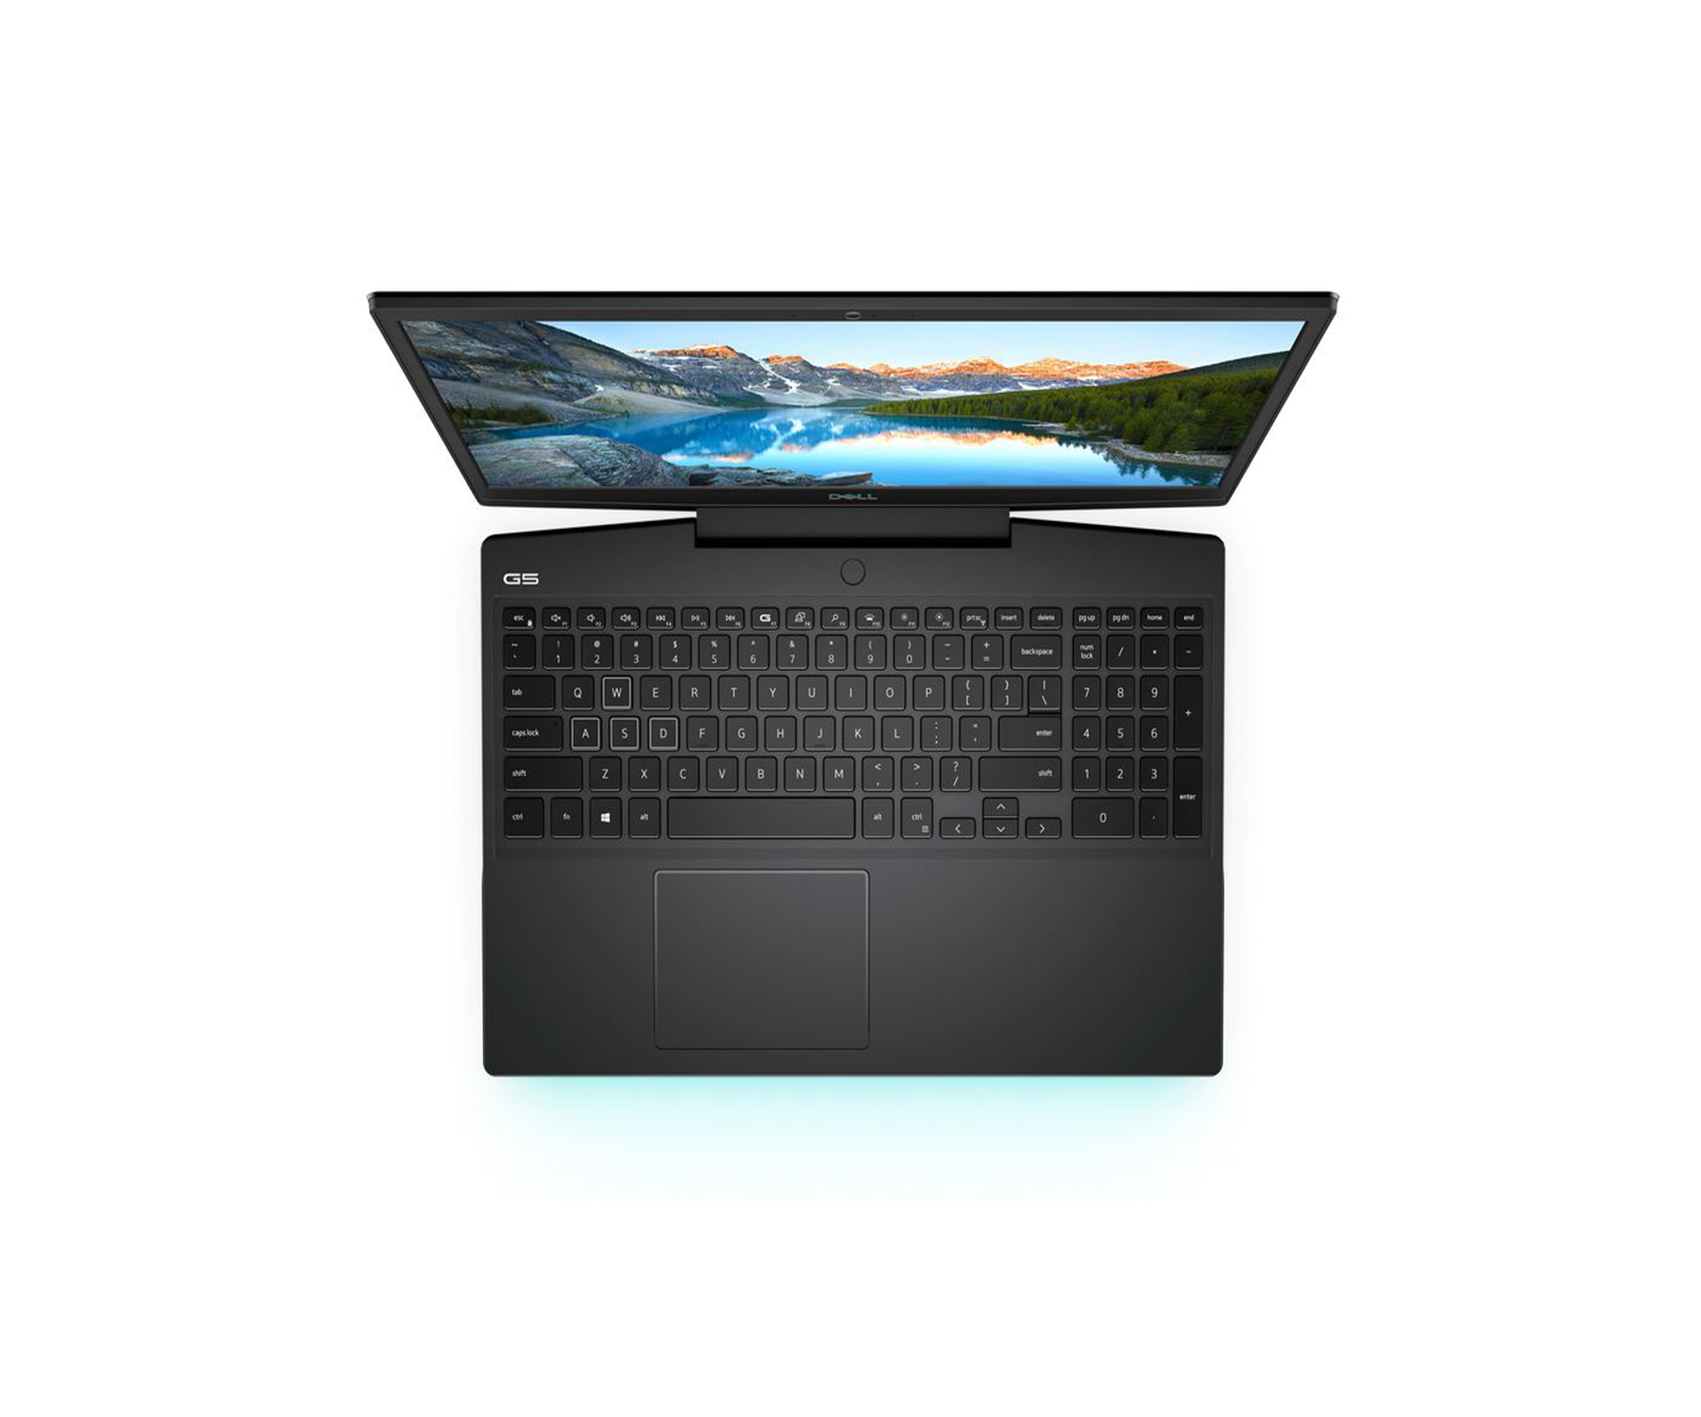 DEll G5 15 5500 Laptop